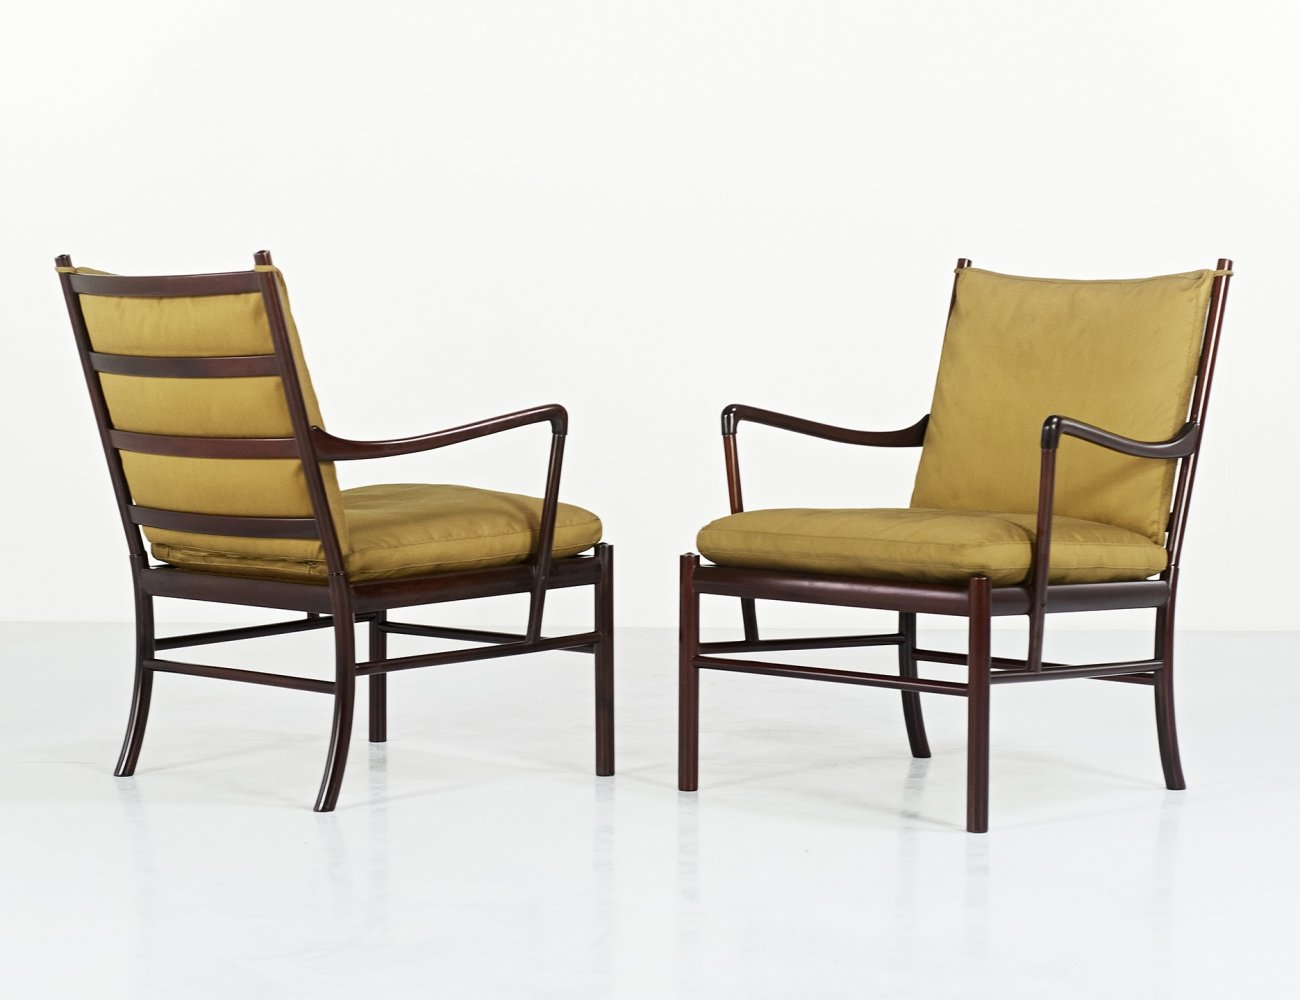 Ole Wanscher pair of PJ 149 Colonial armchairs for Poul Jeppesen, 1950s